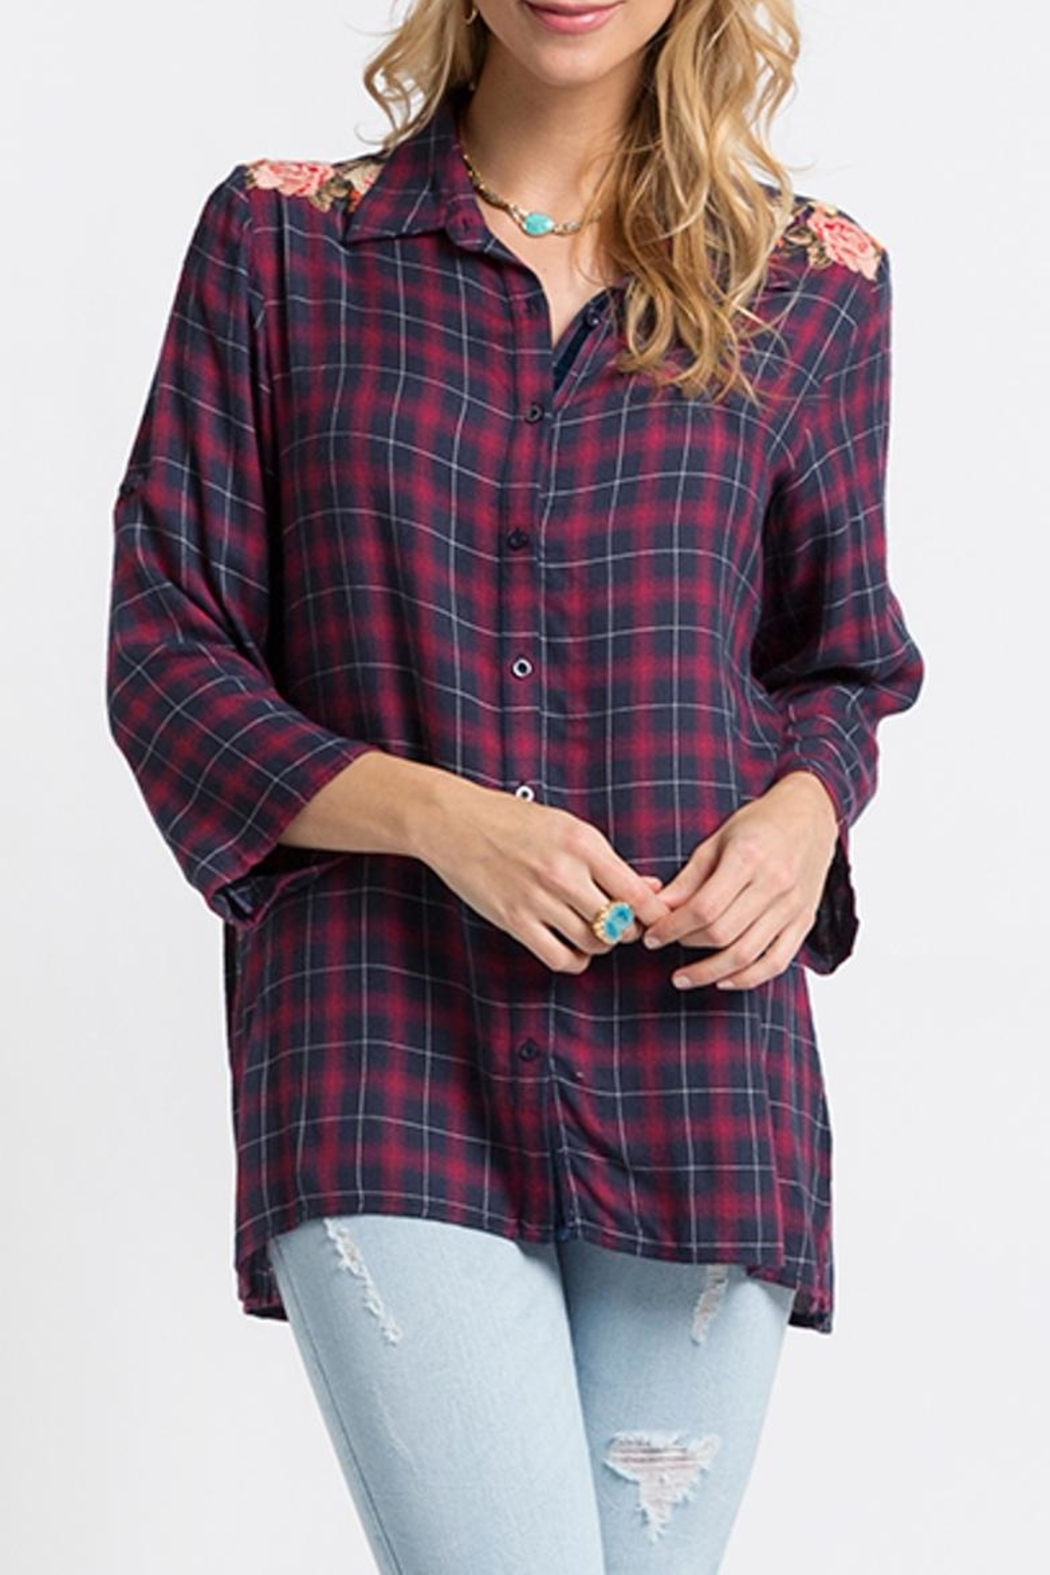 Andree by Unit Embroidered Flannel Tunic - Main Image